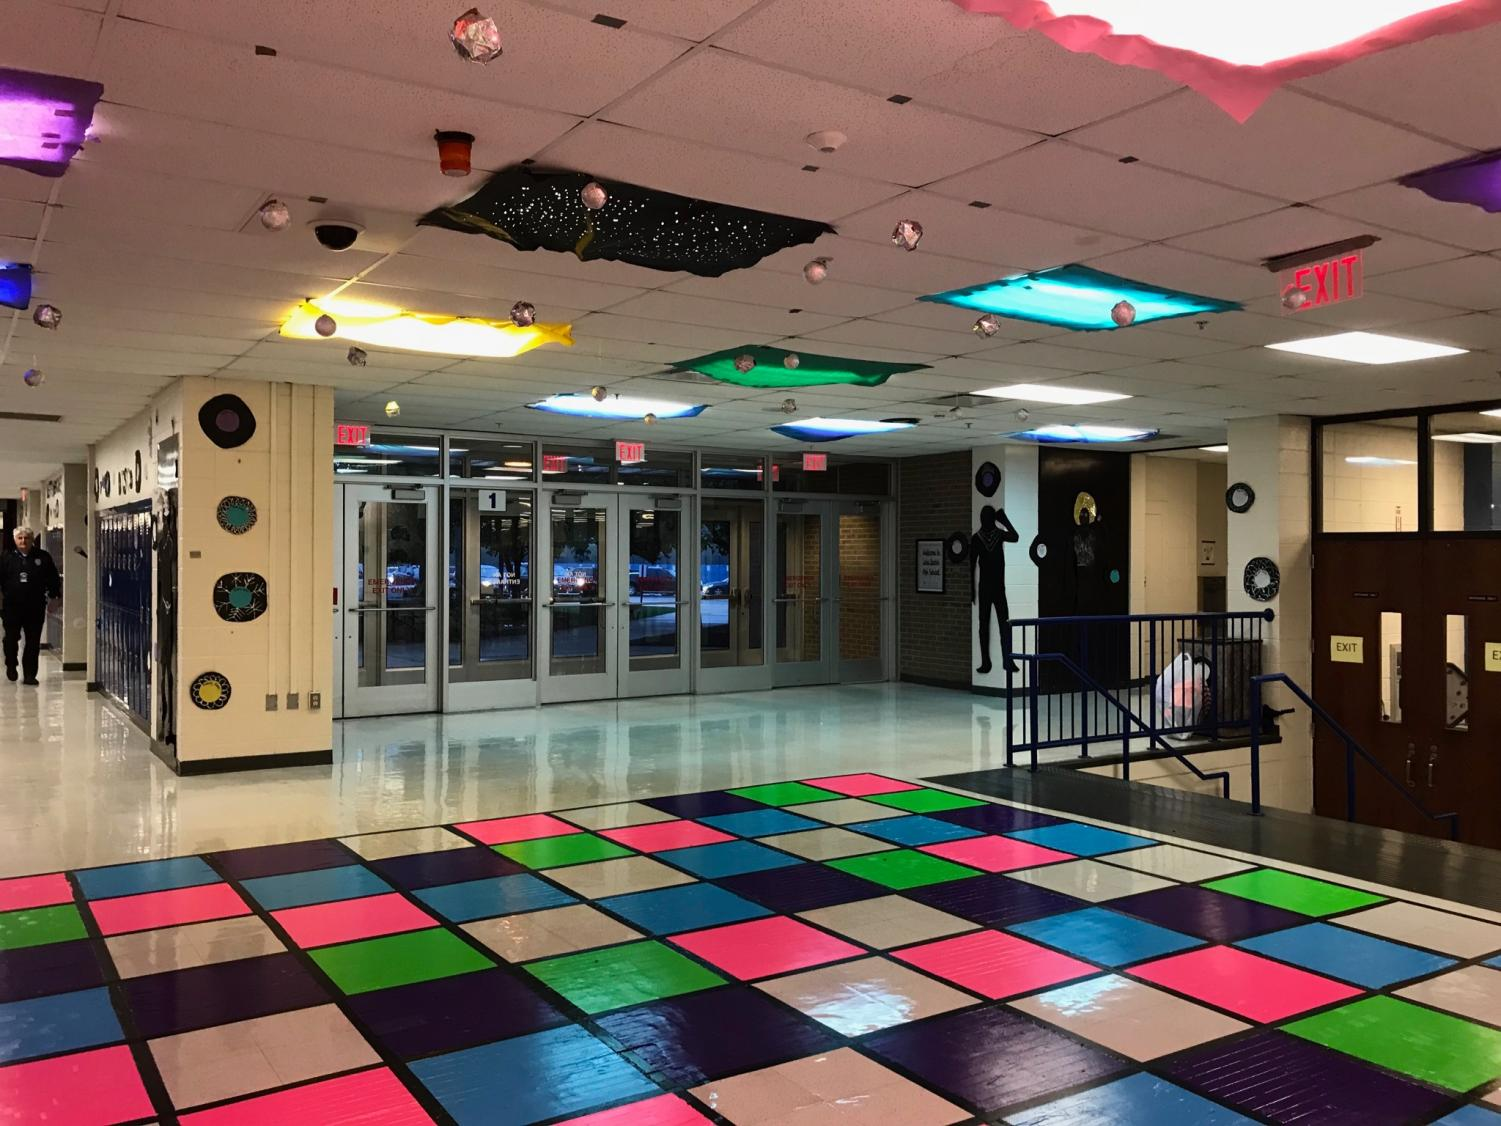 NHS's disco decorations are by the library entrance. The bright, checkered floor was hard to miss.